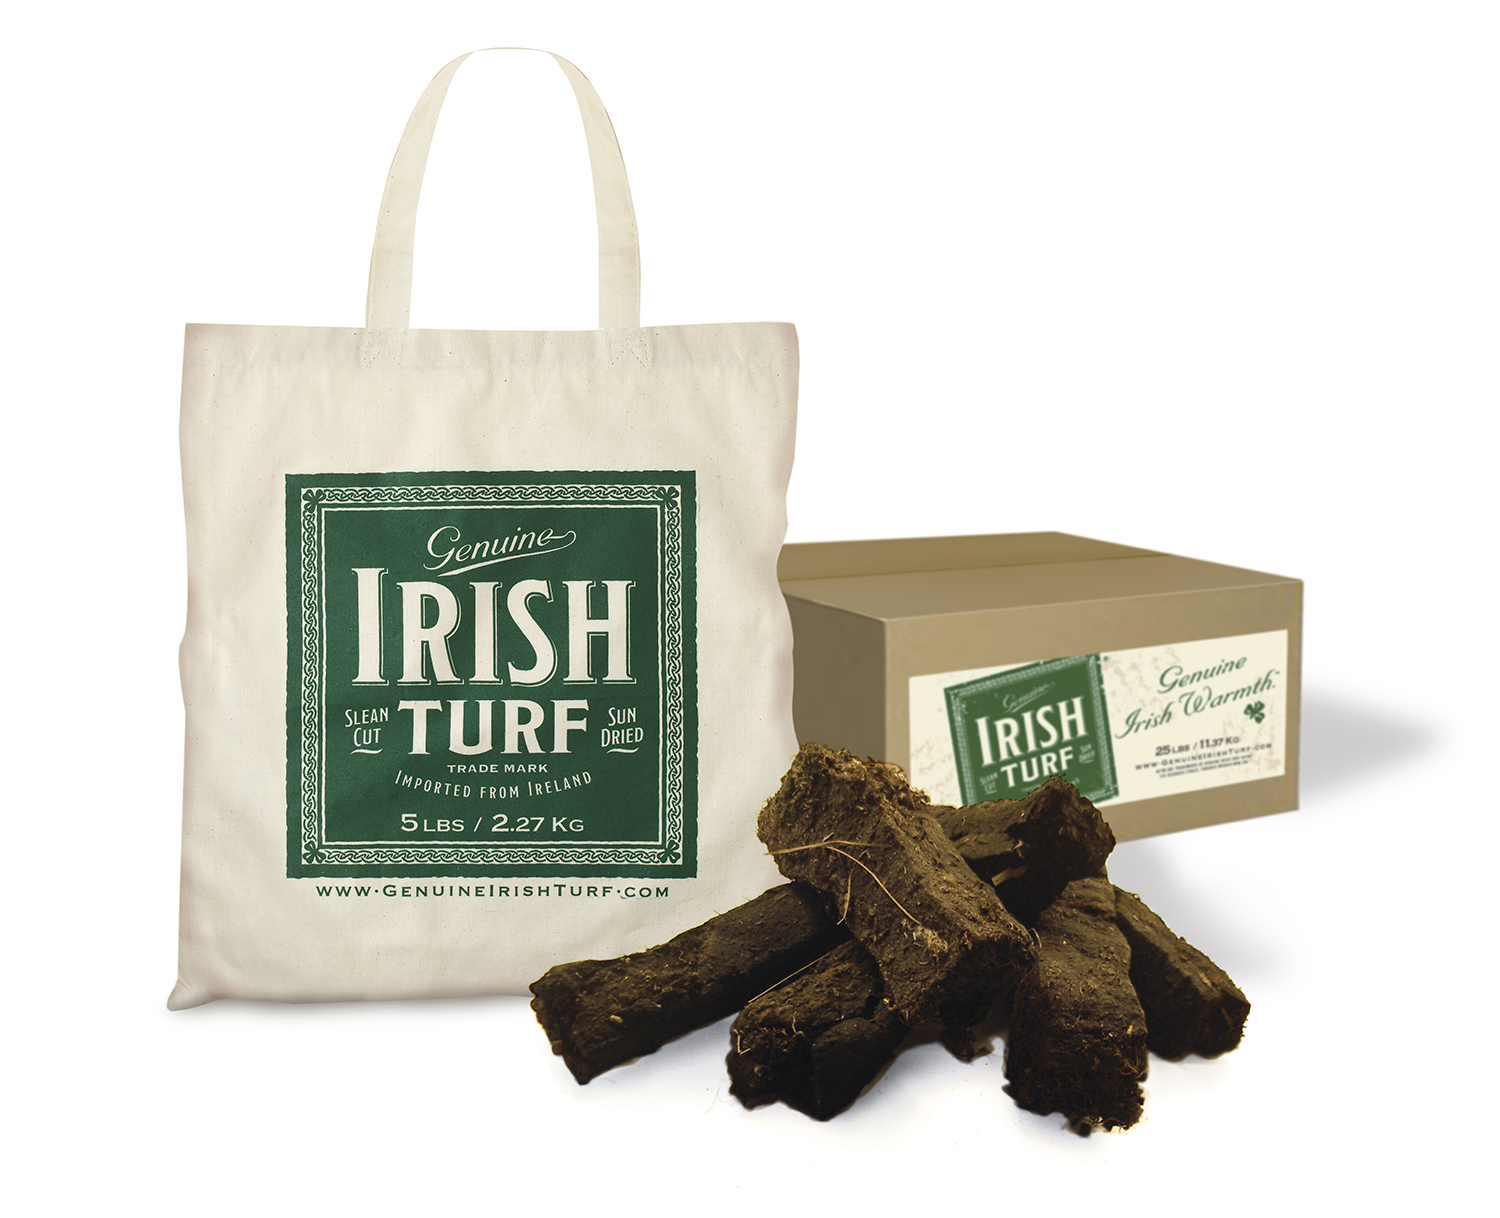 genuine-irish-turf-bag-turf-box.jpg